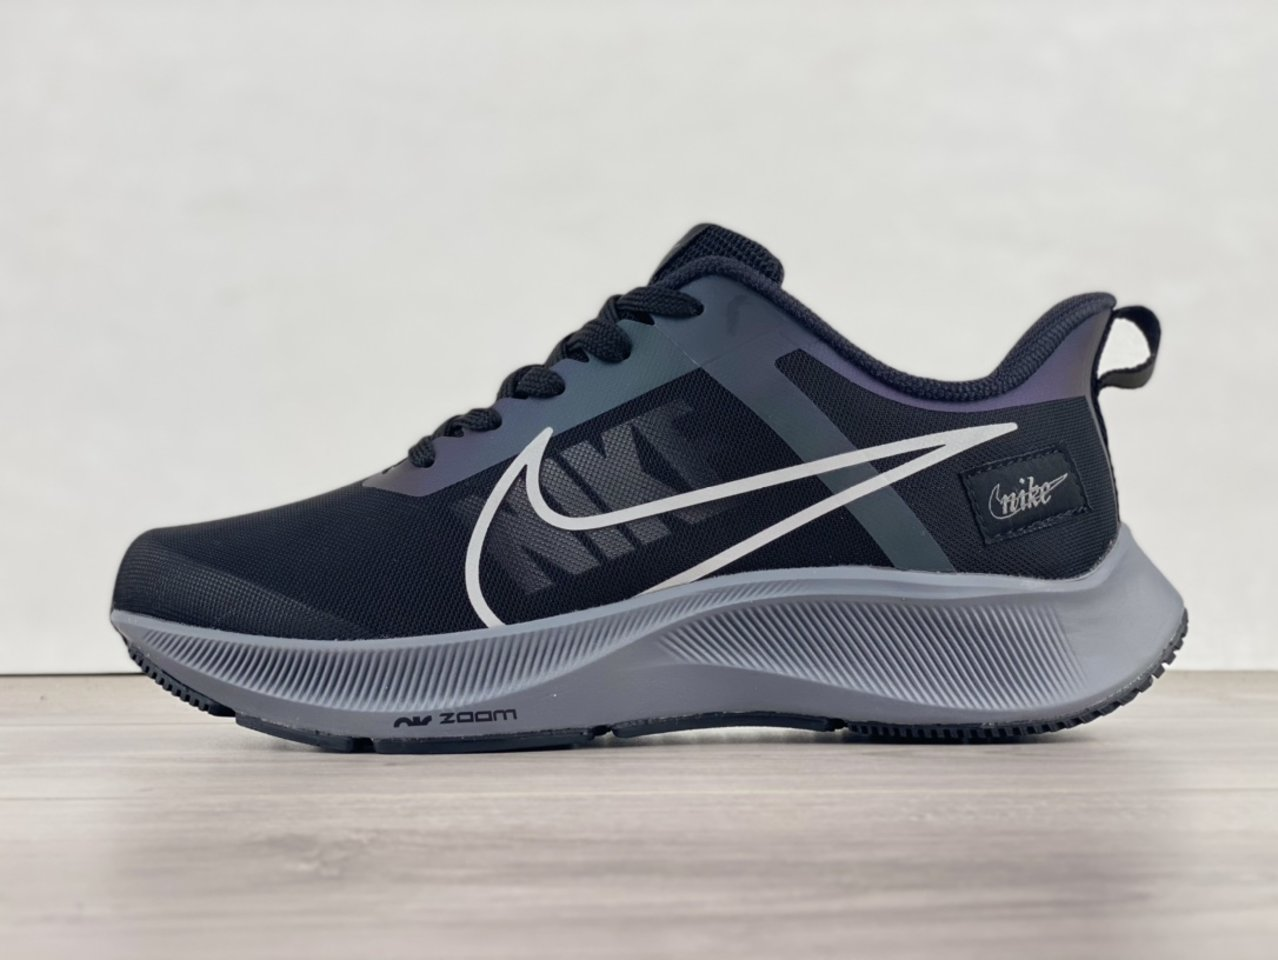 2021New Release Nike Air Zoom Structure 39X Black Grey Outlet Sale DJ3128-600